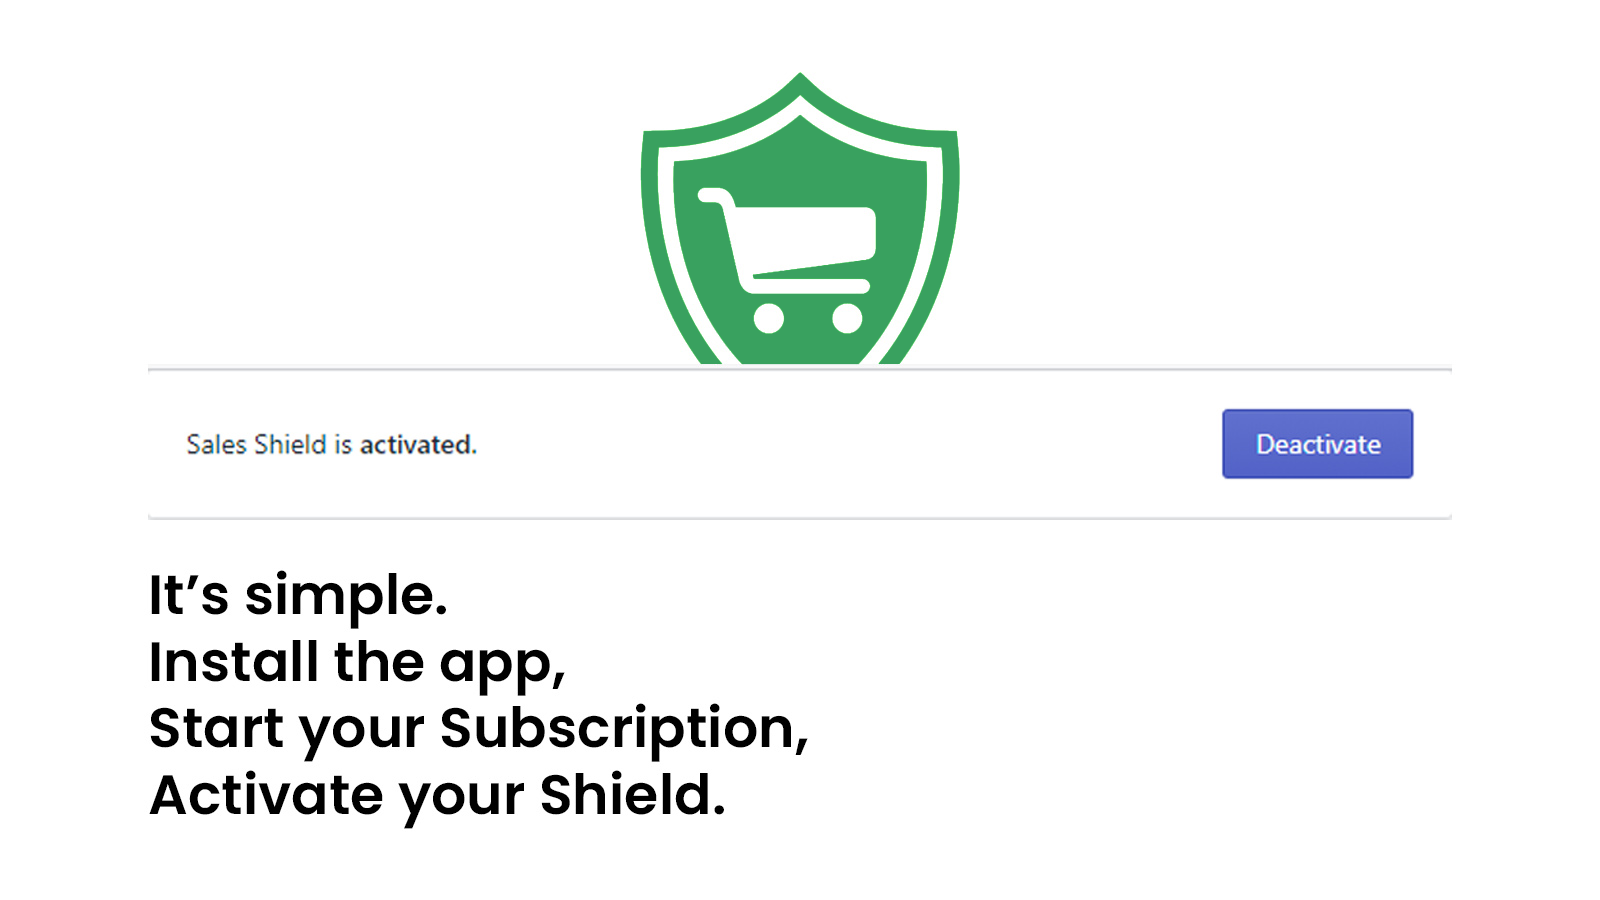 Install the app, Start your Subscription, Activate your Shield.